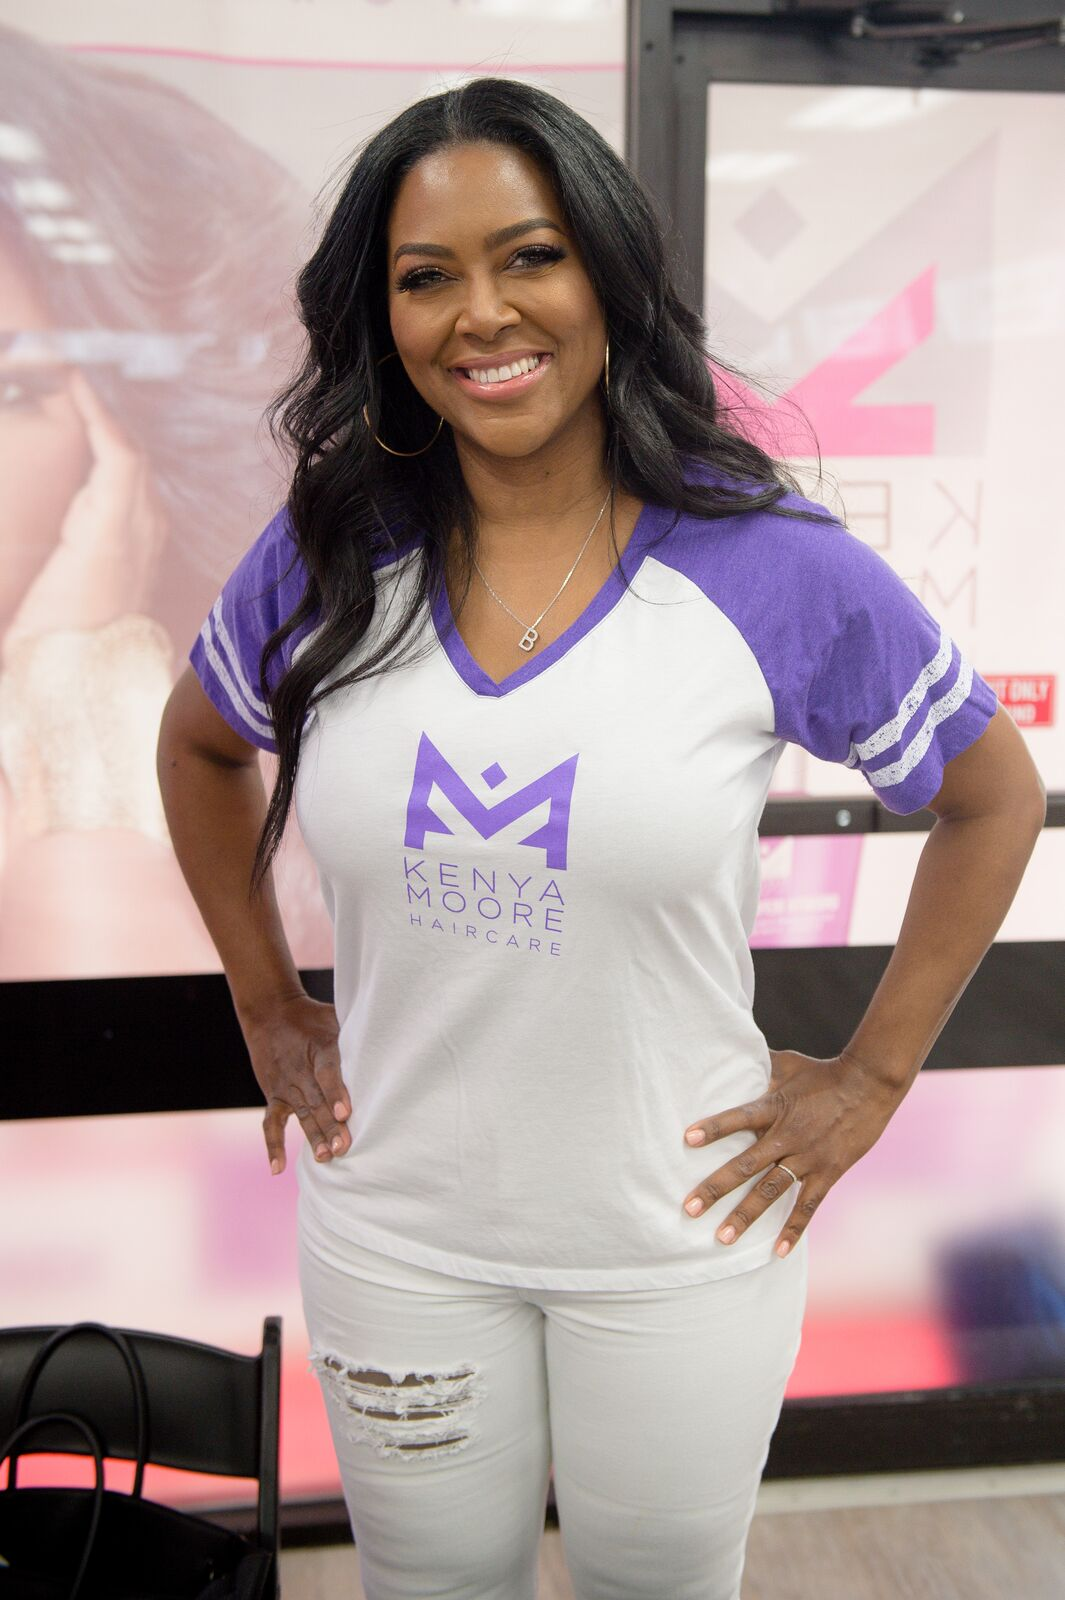 Kenya Moore attends Sally Beauty in store appearance on May 04, 2019 in Atlanta, Georgia   Photo: Getty Images